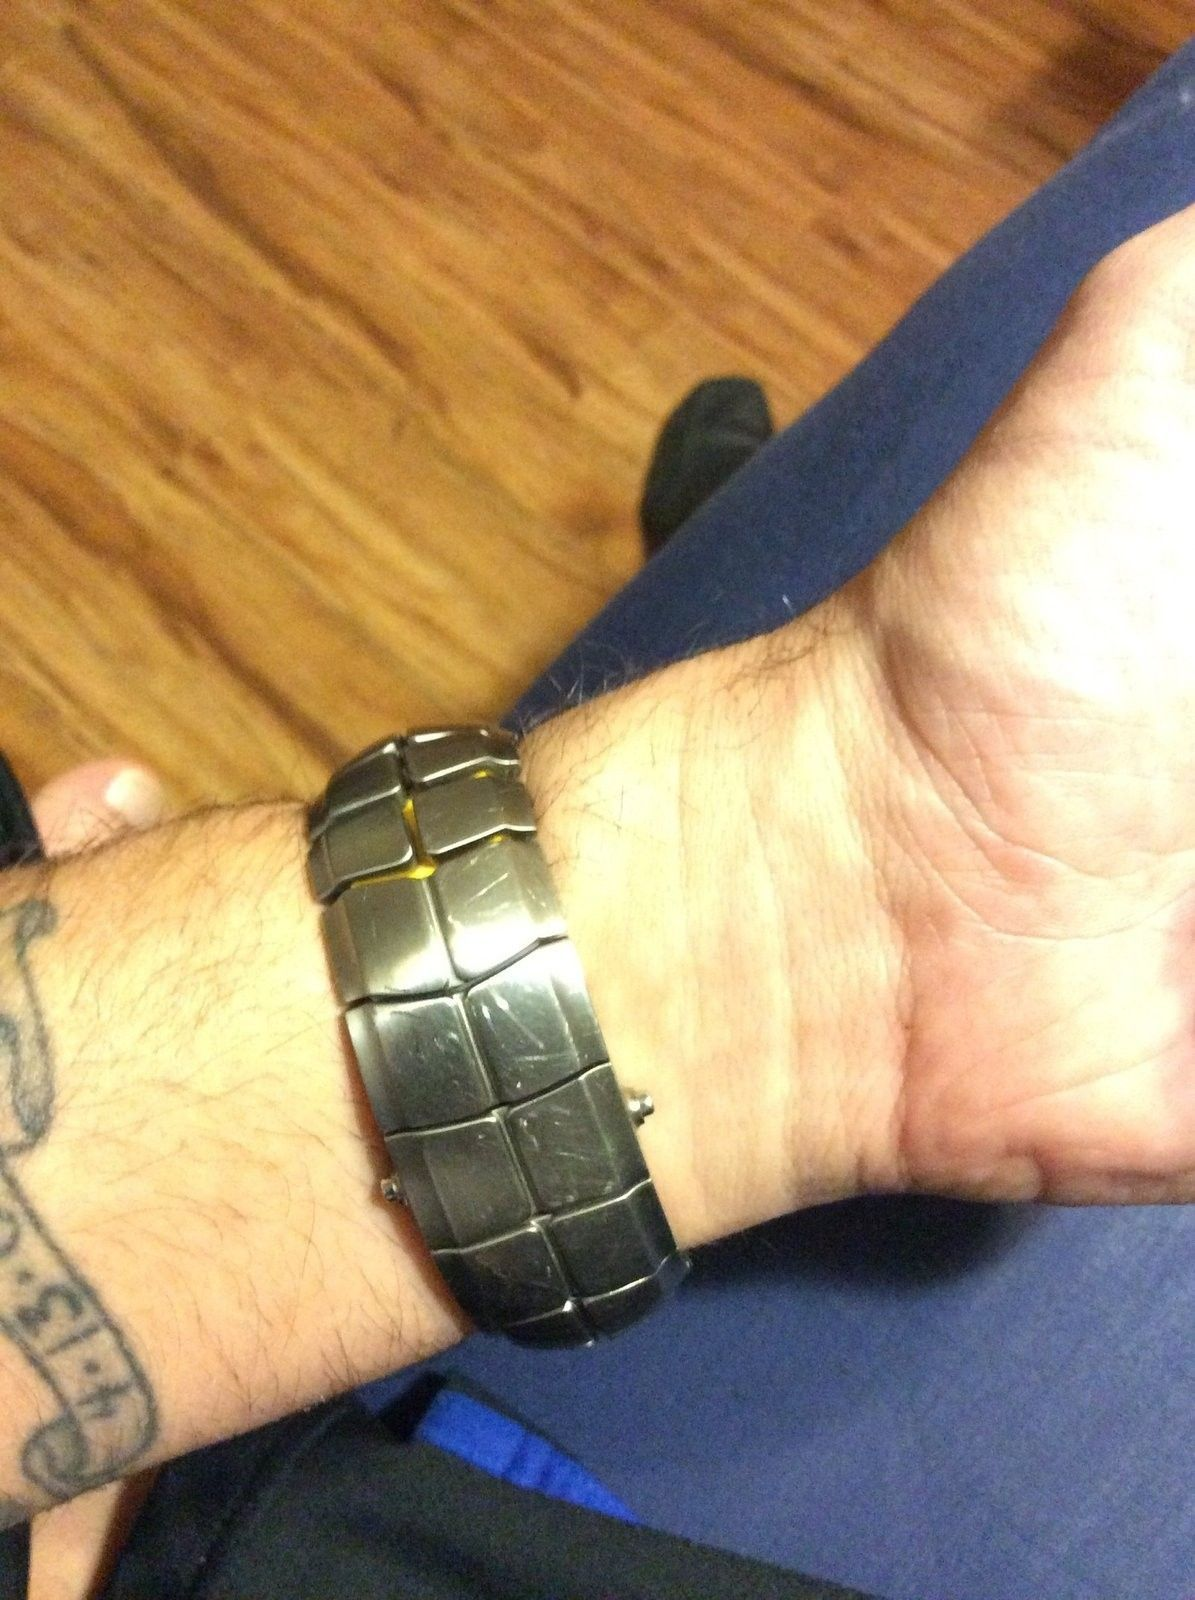 My timebomb 2 Livestrong watch - image.jpg